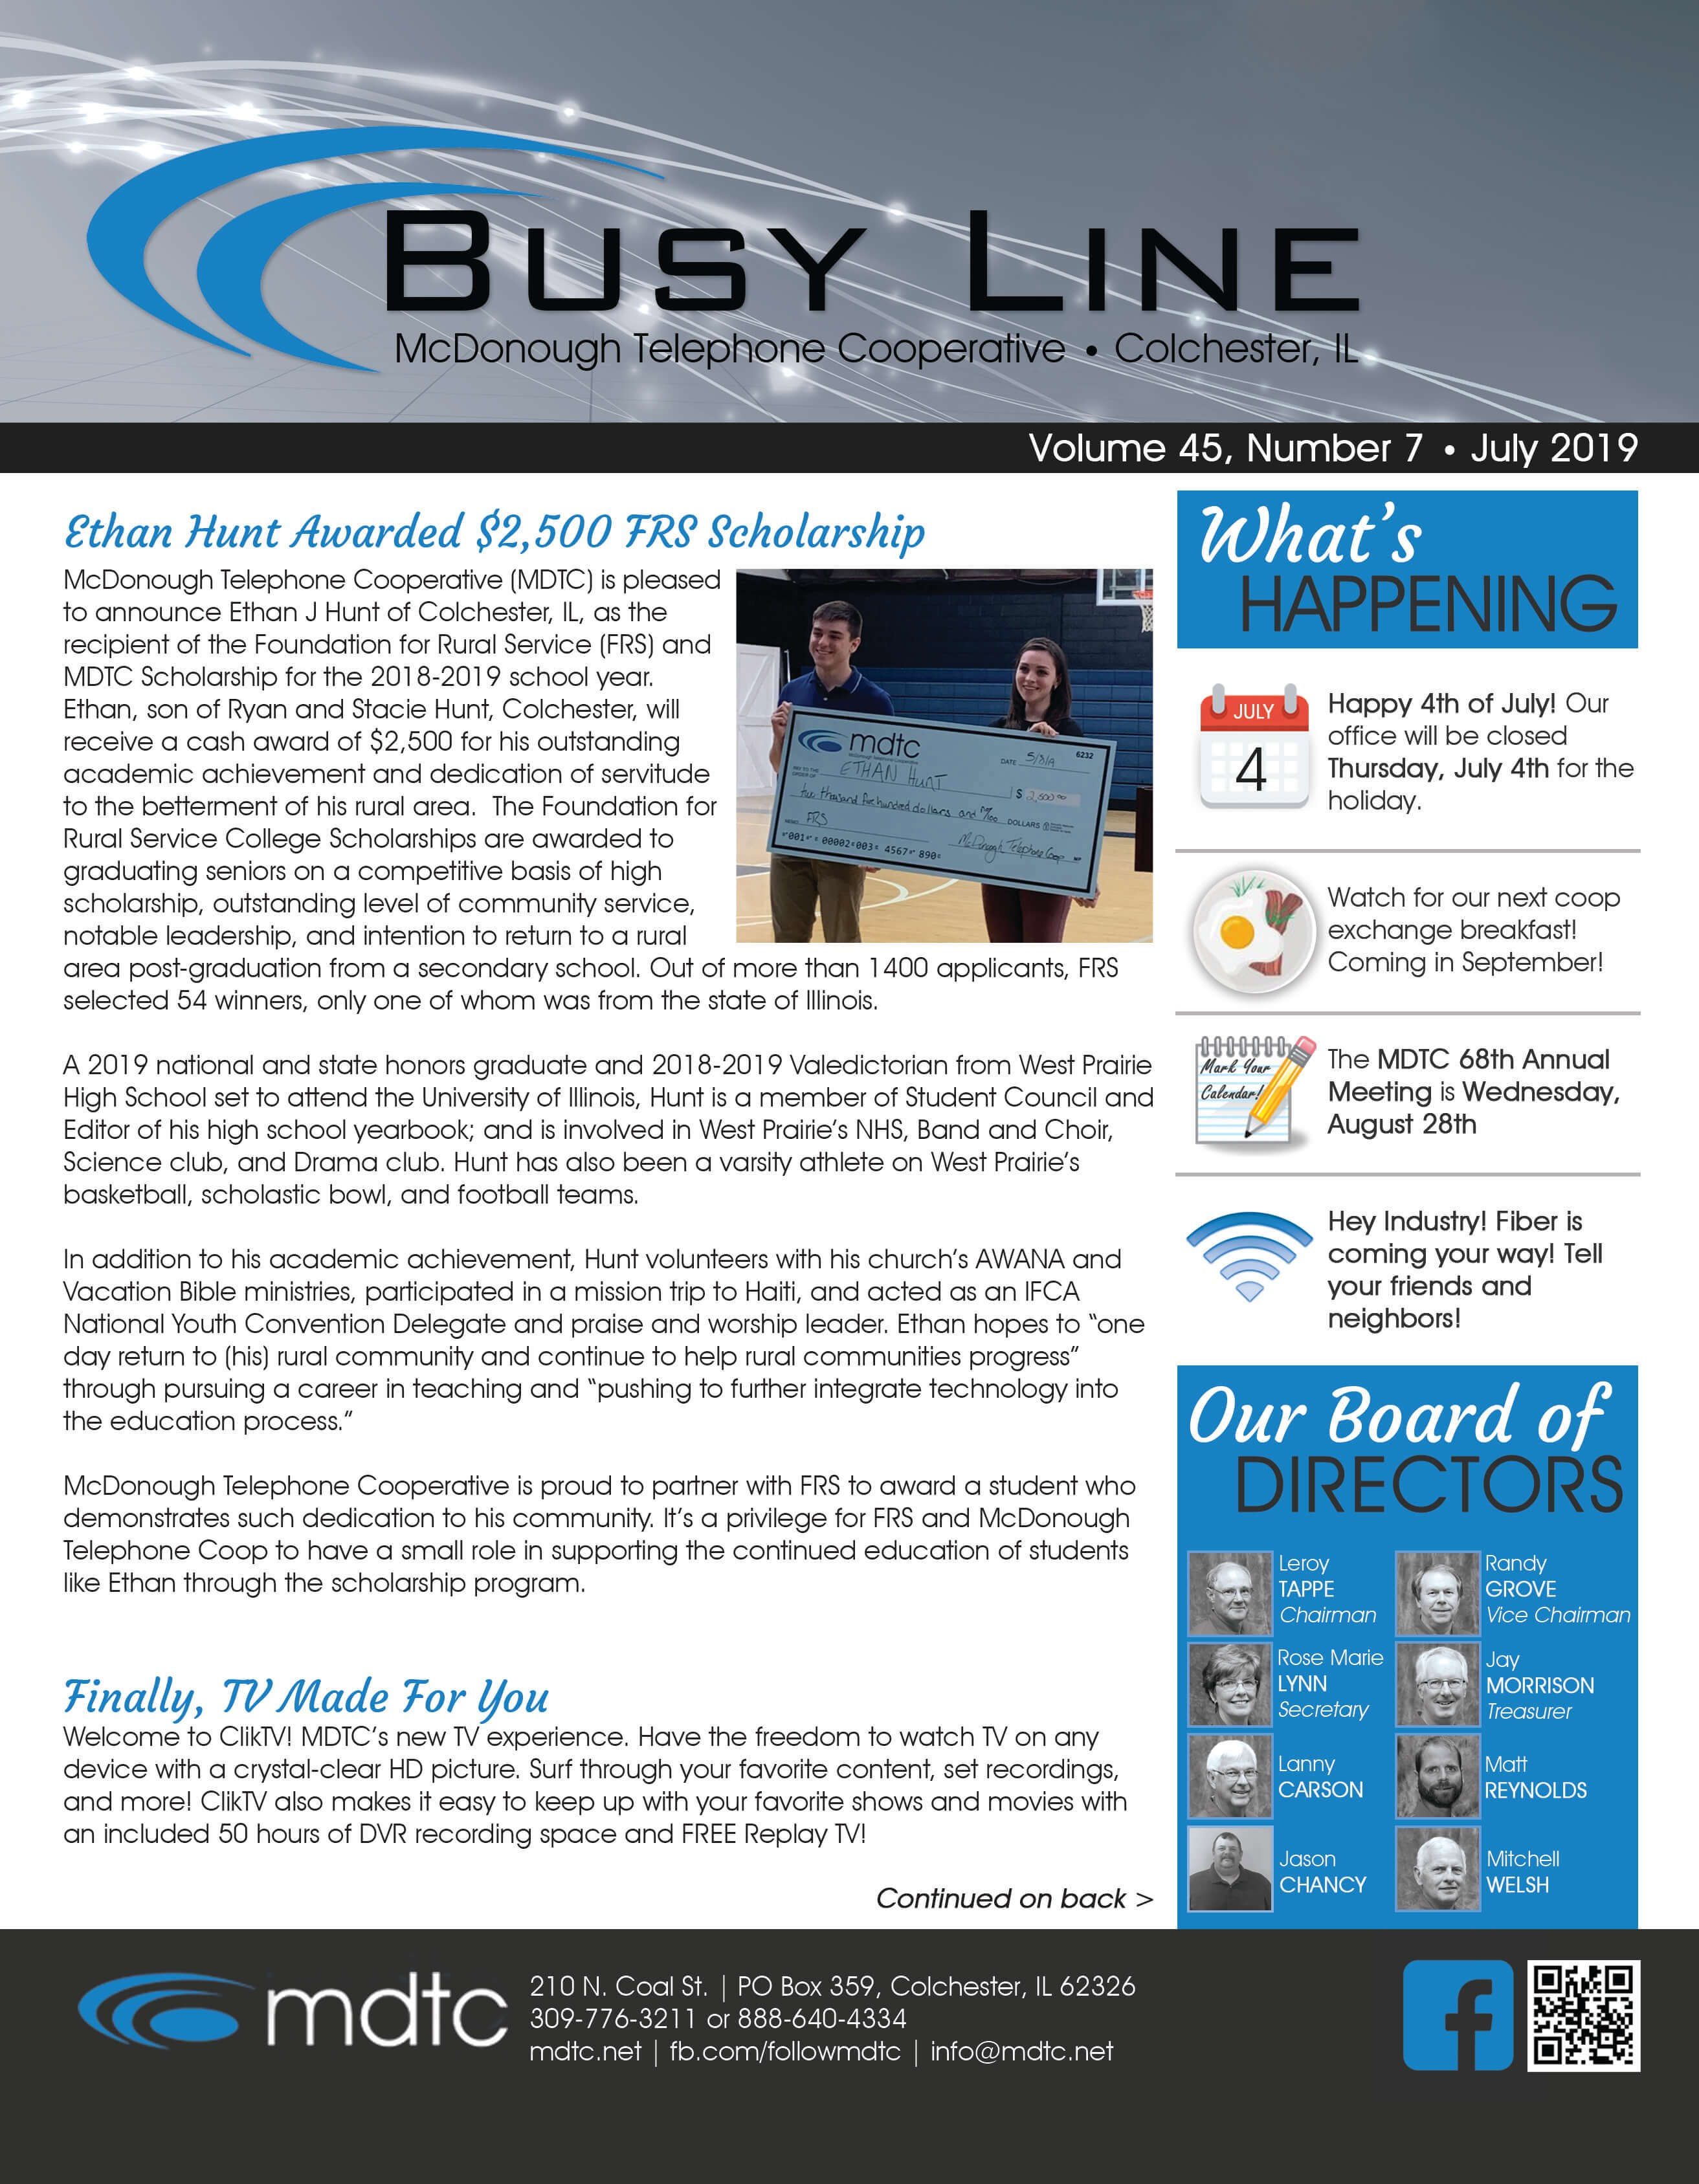 The Busy Line - Newsletter | McDonough Telephone Cooperative